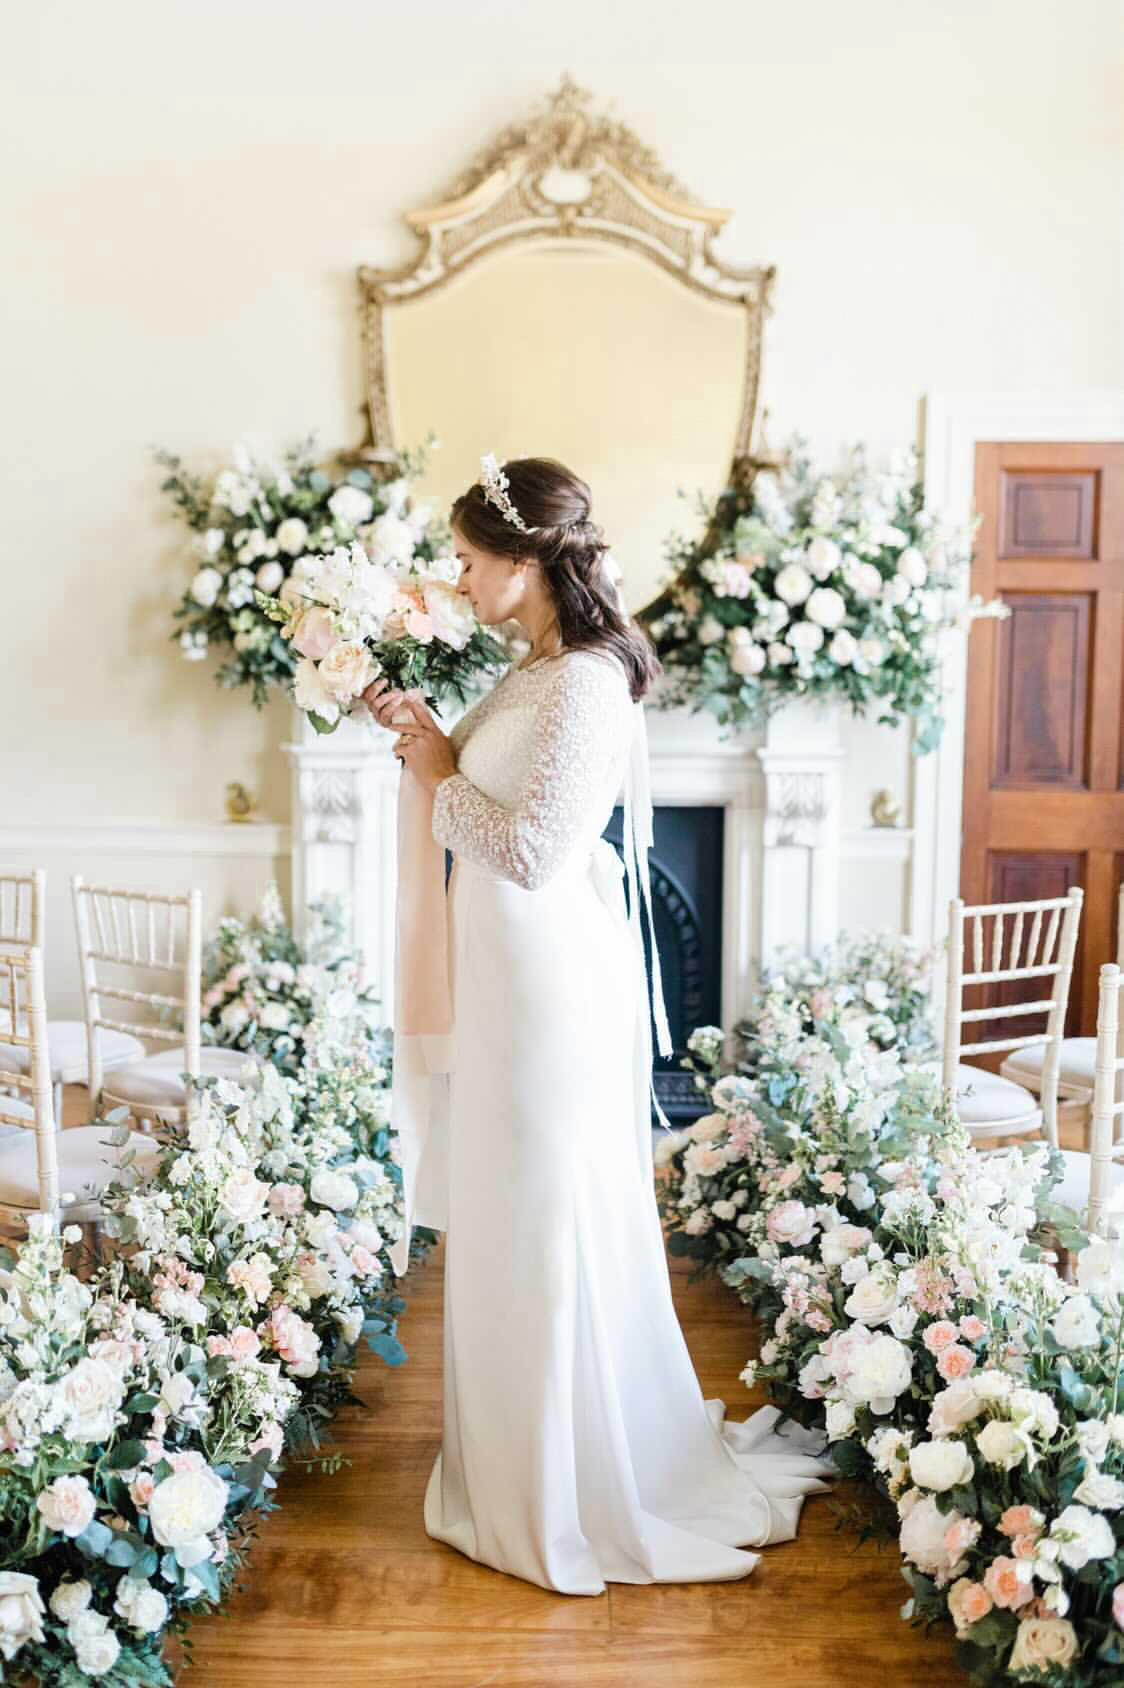 Bride with wedding bouquet surrounded by aisle flowers and mantlepiece flowers by Flourish and Grace